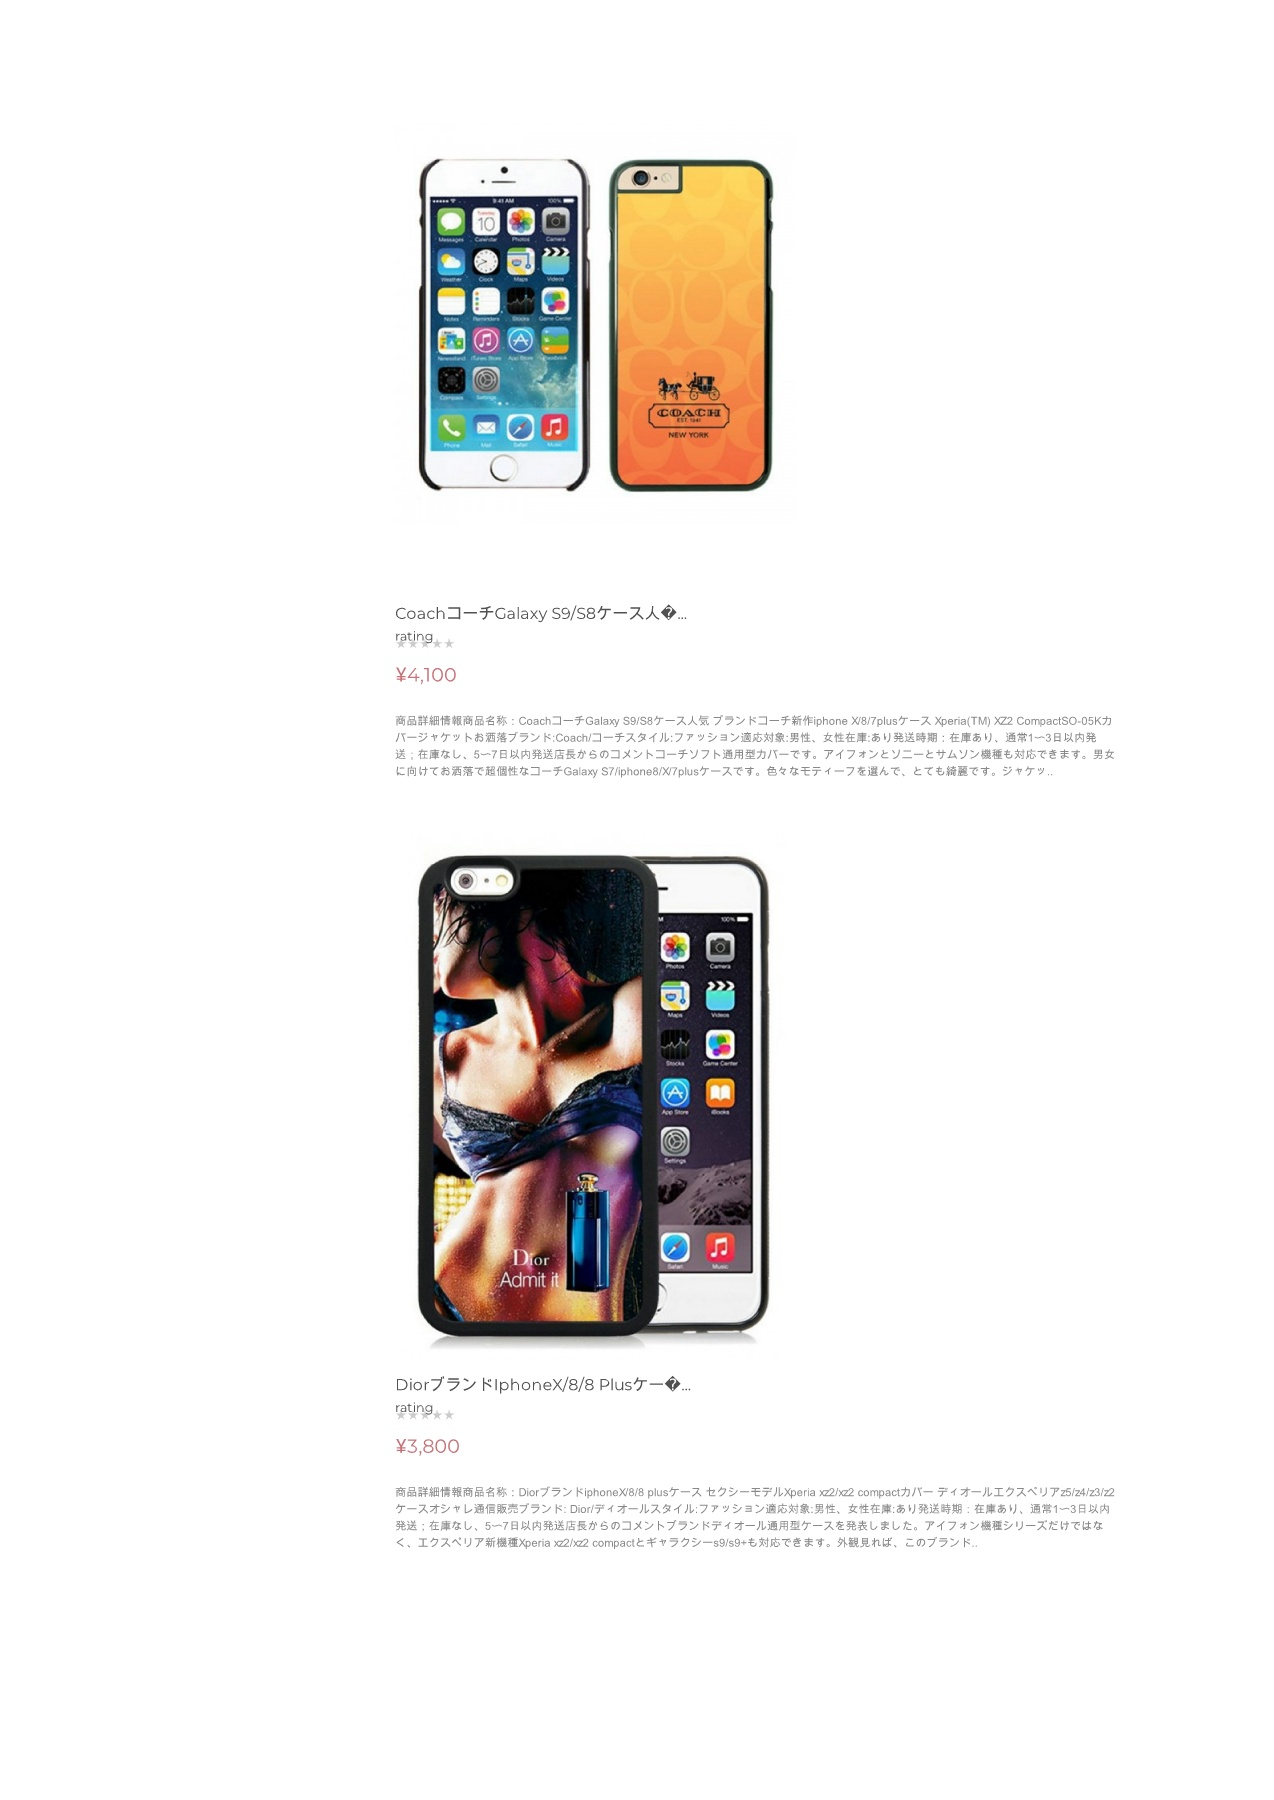 a5a374db8b かわいいでオシャレiphone9/xplus携帯ケース Pages 1 - 6 - Text Version | AnyFlip